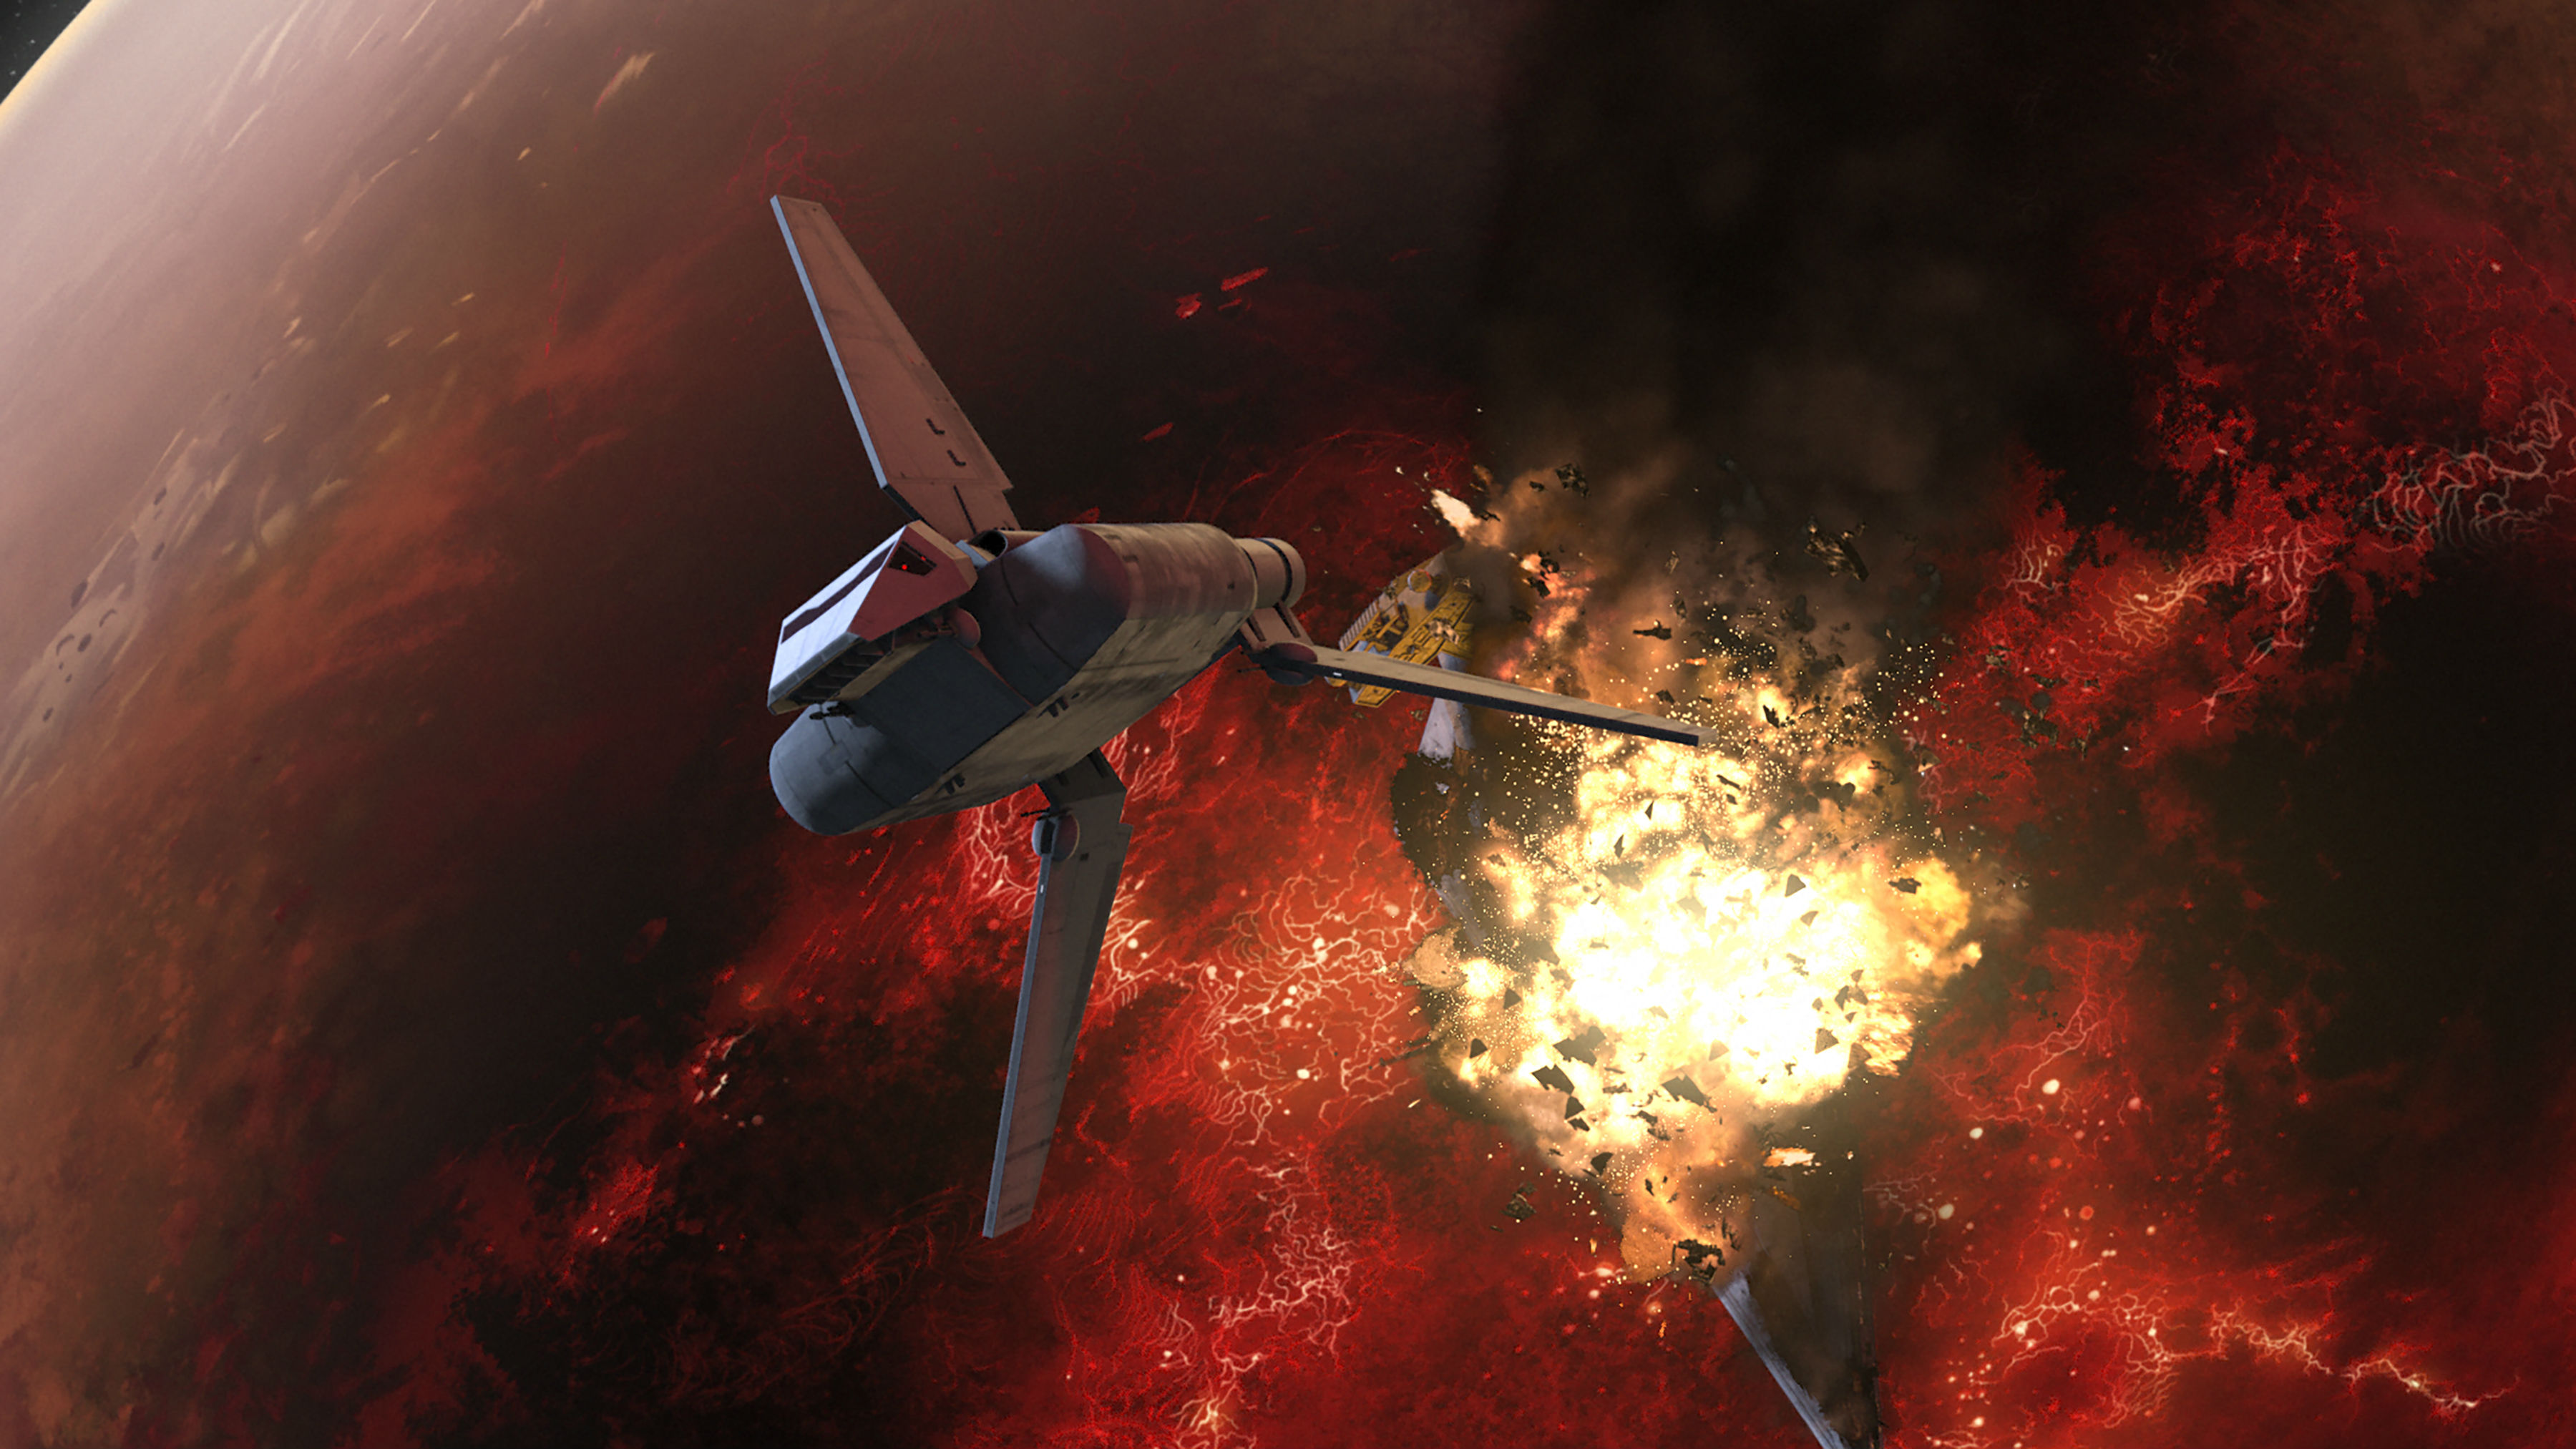 STAR WARS REBELS Ship Screen Captures Page 7 X Wing Off Topic FFG Community